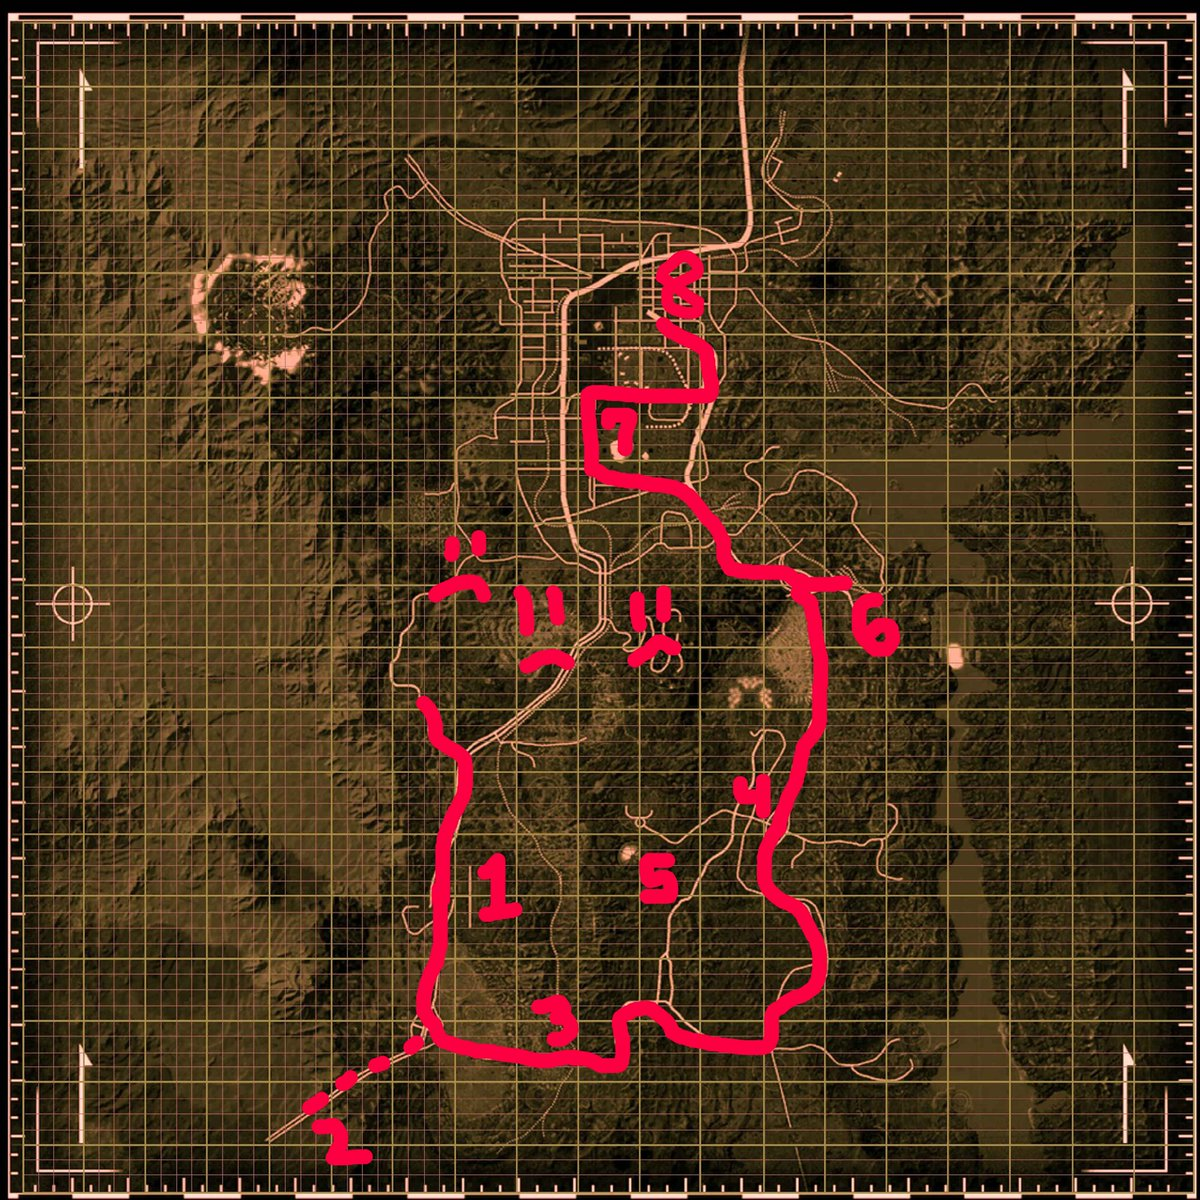 OK! We're back. So I've marked up a map of the player's likely path through the wasteland from the beginning https://t.co/fkDeQtvnKI